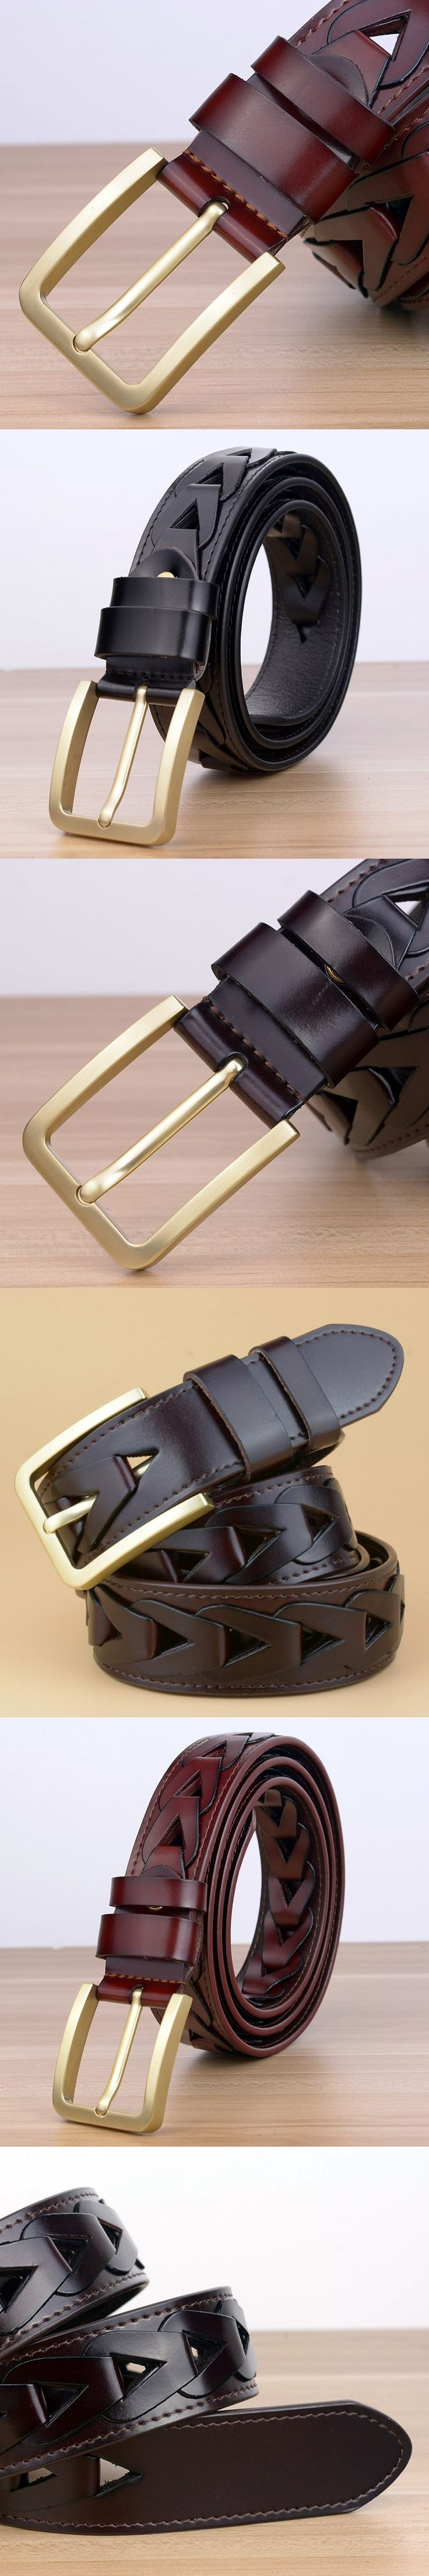 New Braided Belt Leather Belt Men Fashion Jeans Belts Male Vintage Girdle Waistband Male PIn Buckle Weaving grain belt